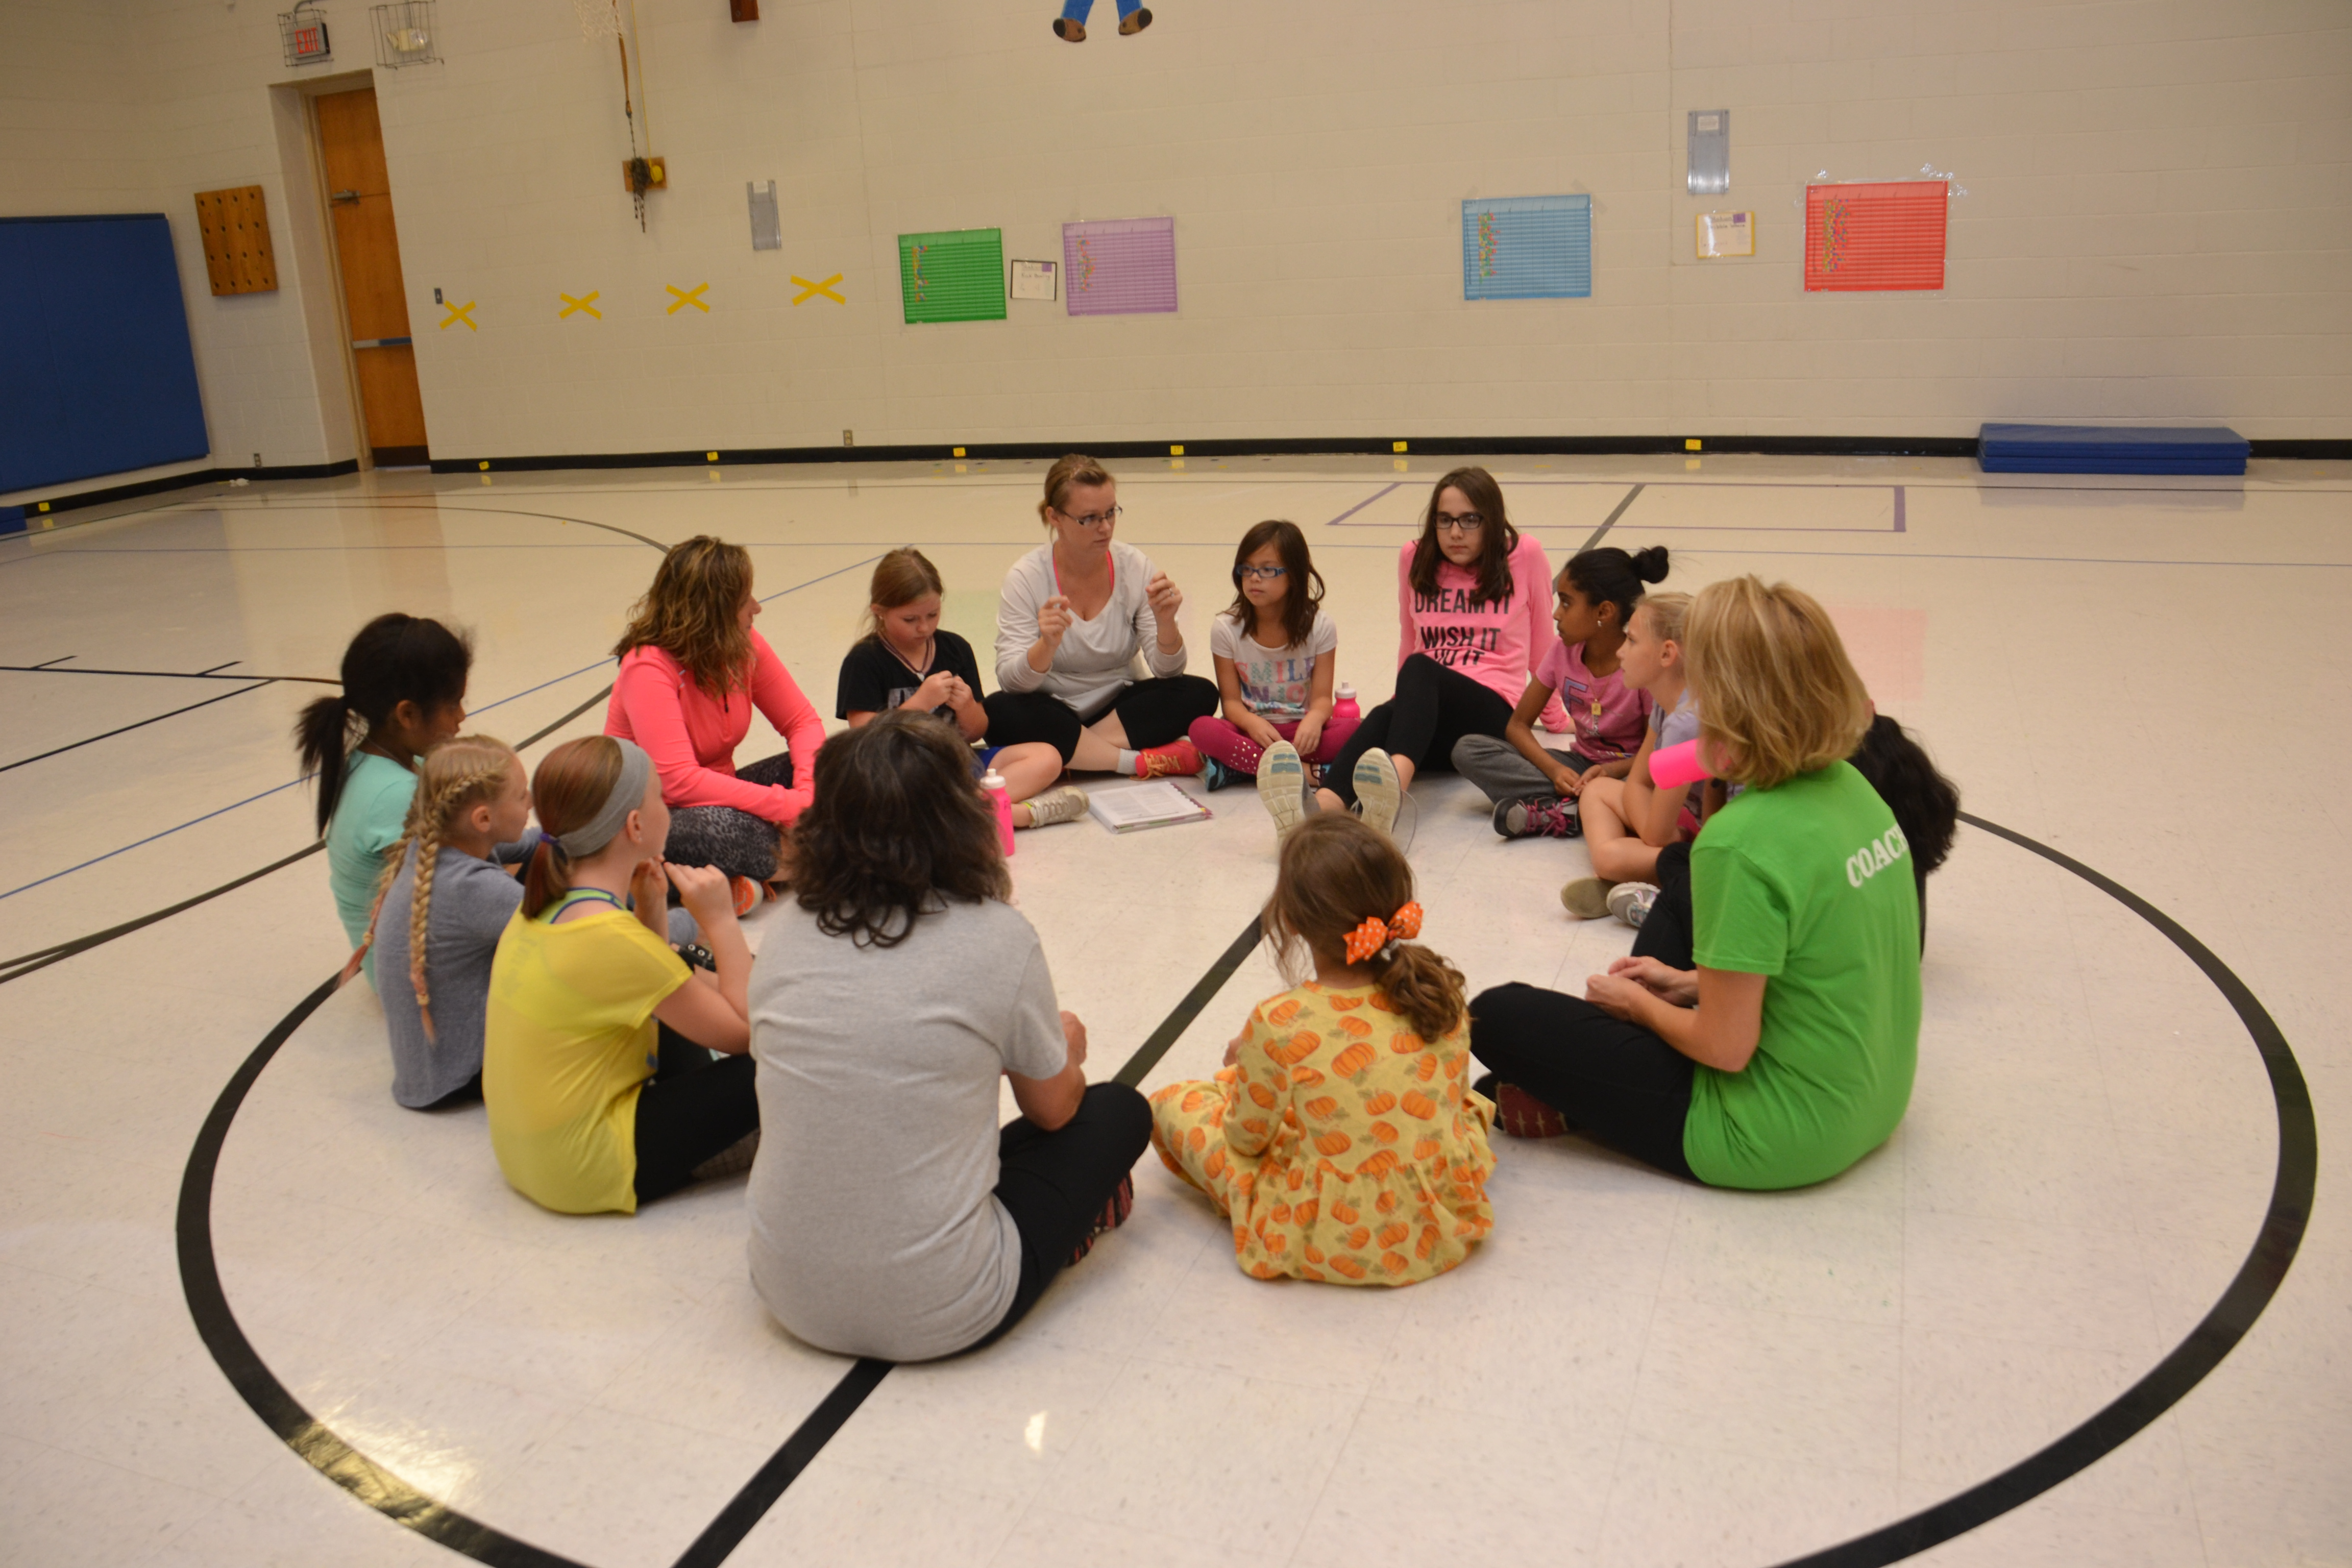 The Fall Season of Girls on the Run has Started at Pointview Elementary School